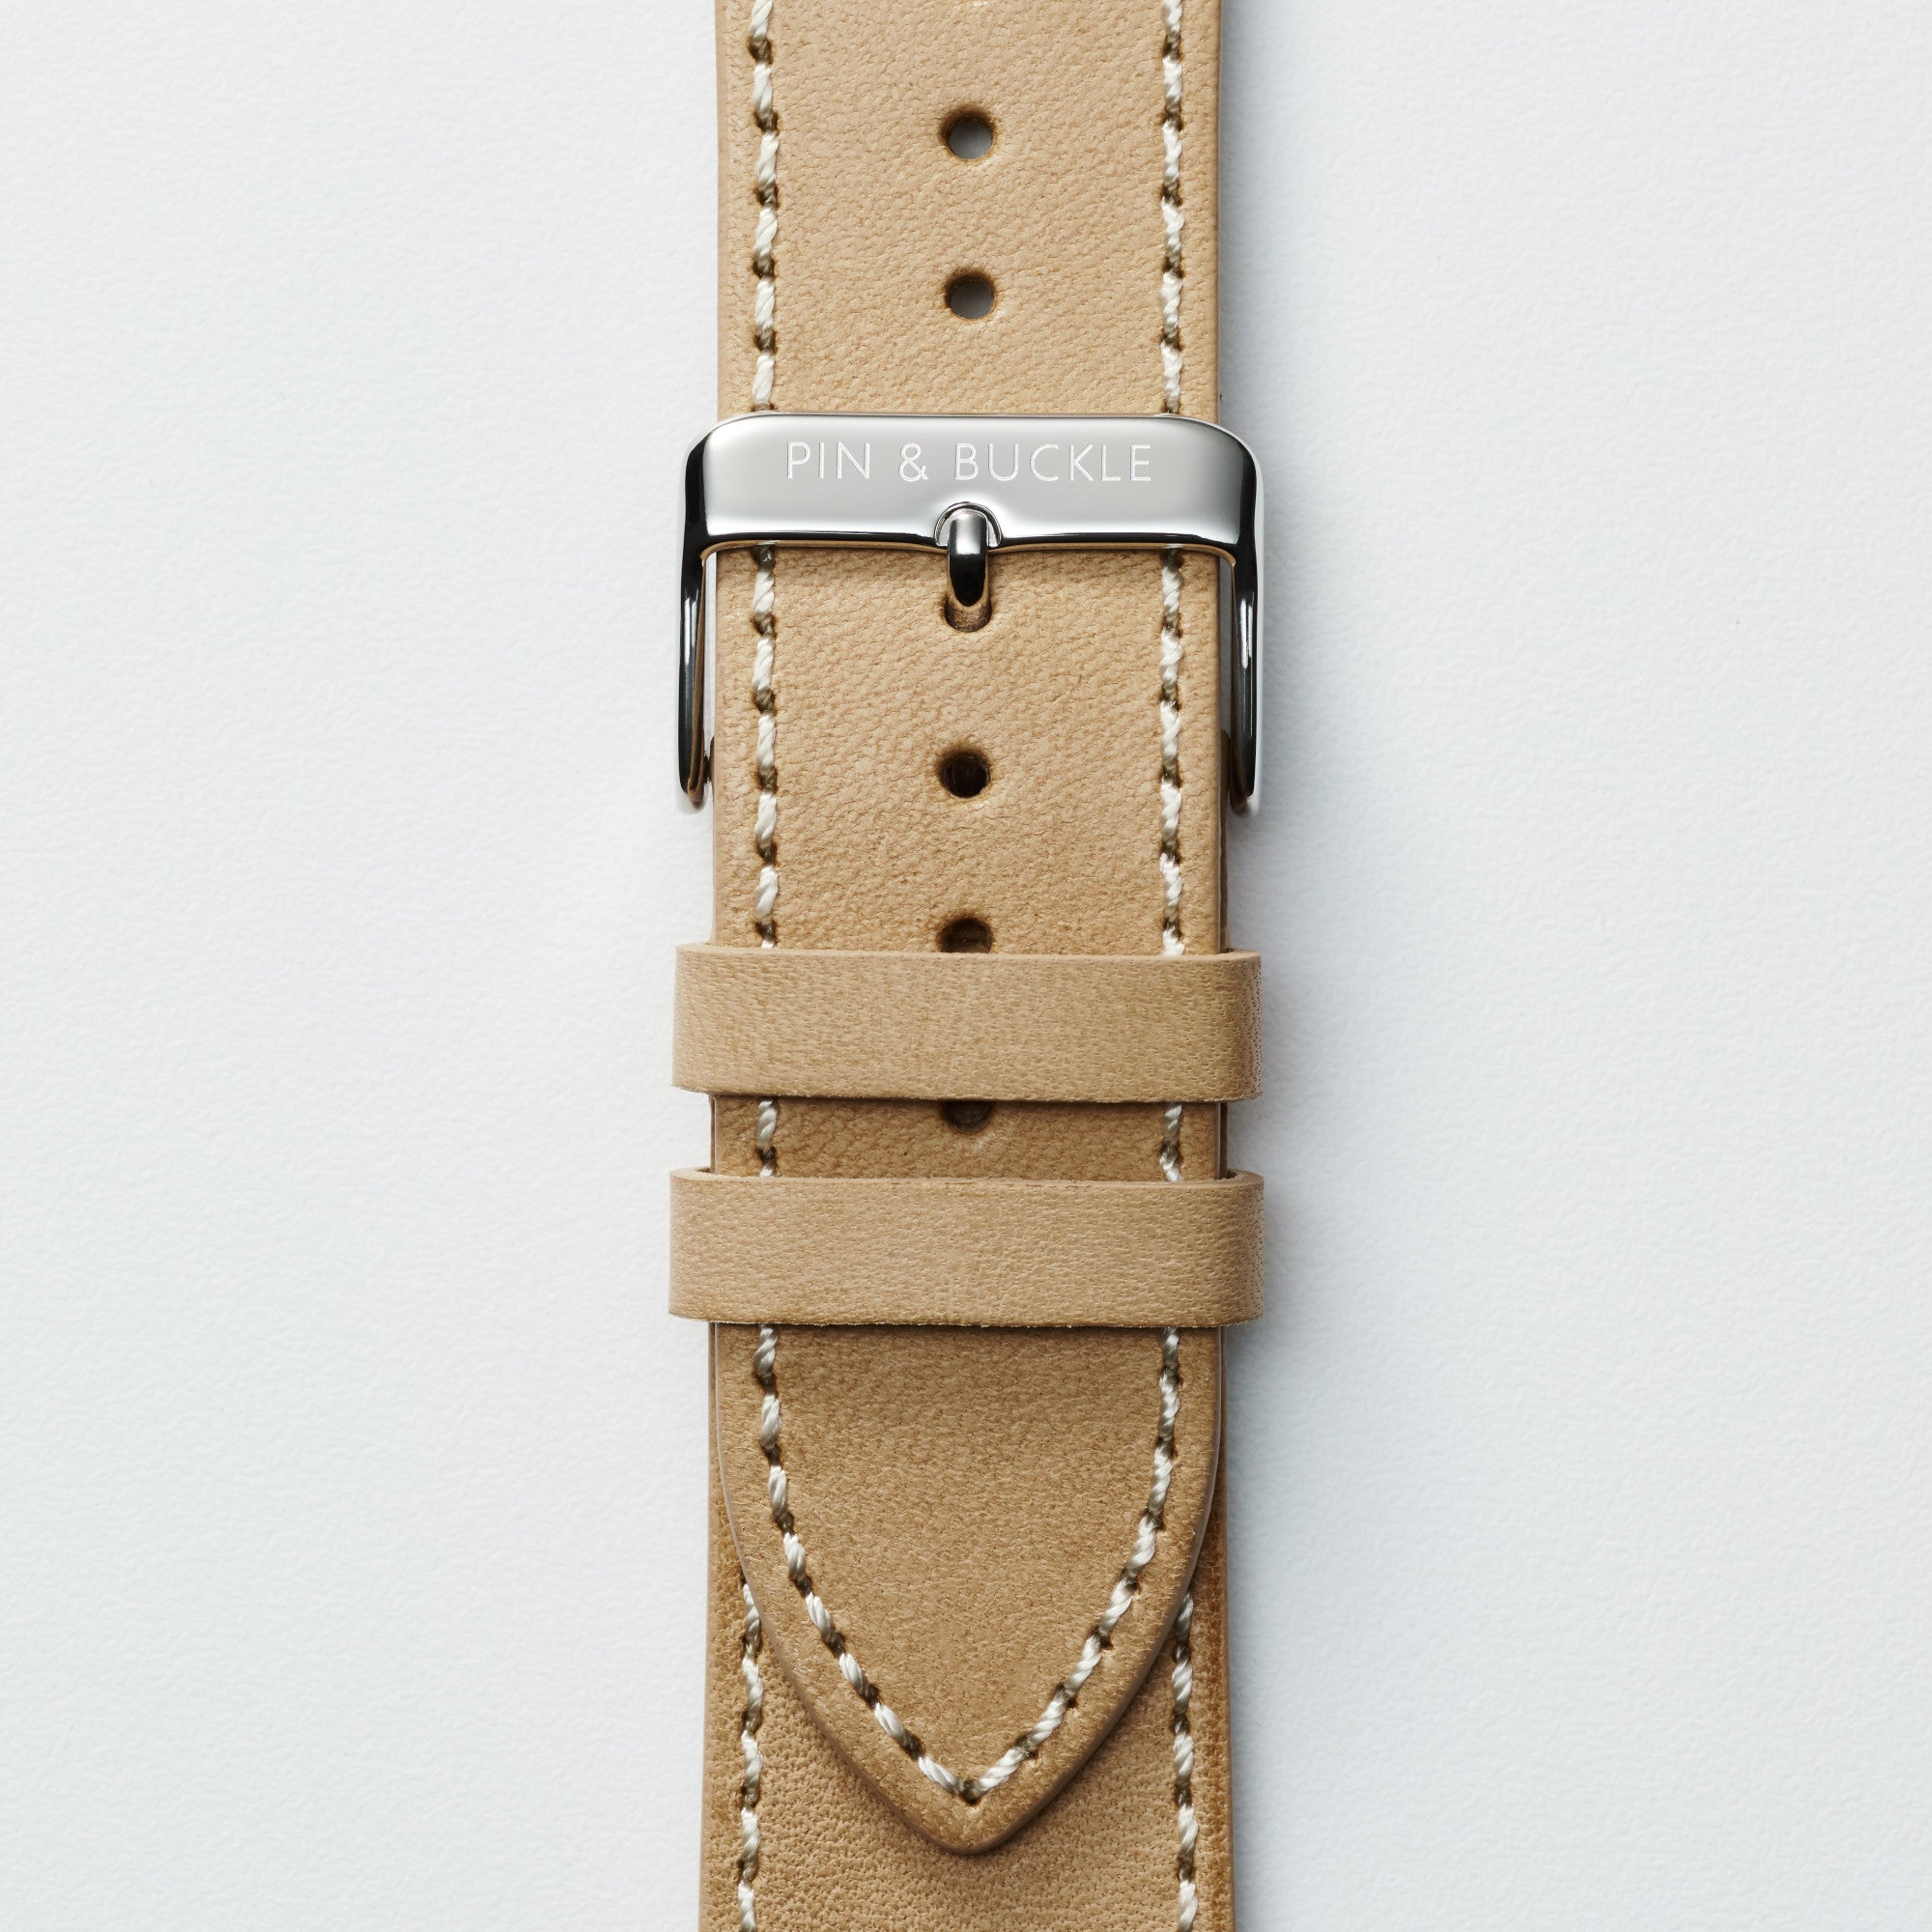 Vachetta Leather Apple Watch Band by Pin & Buckle - Patina Day 1